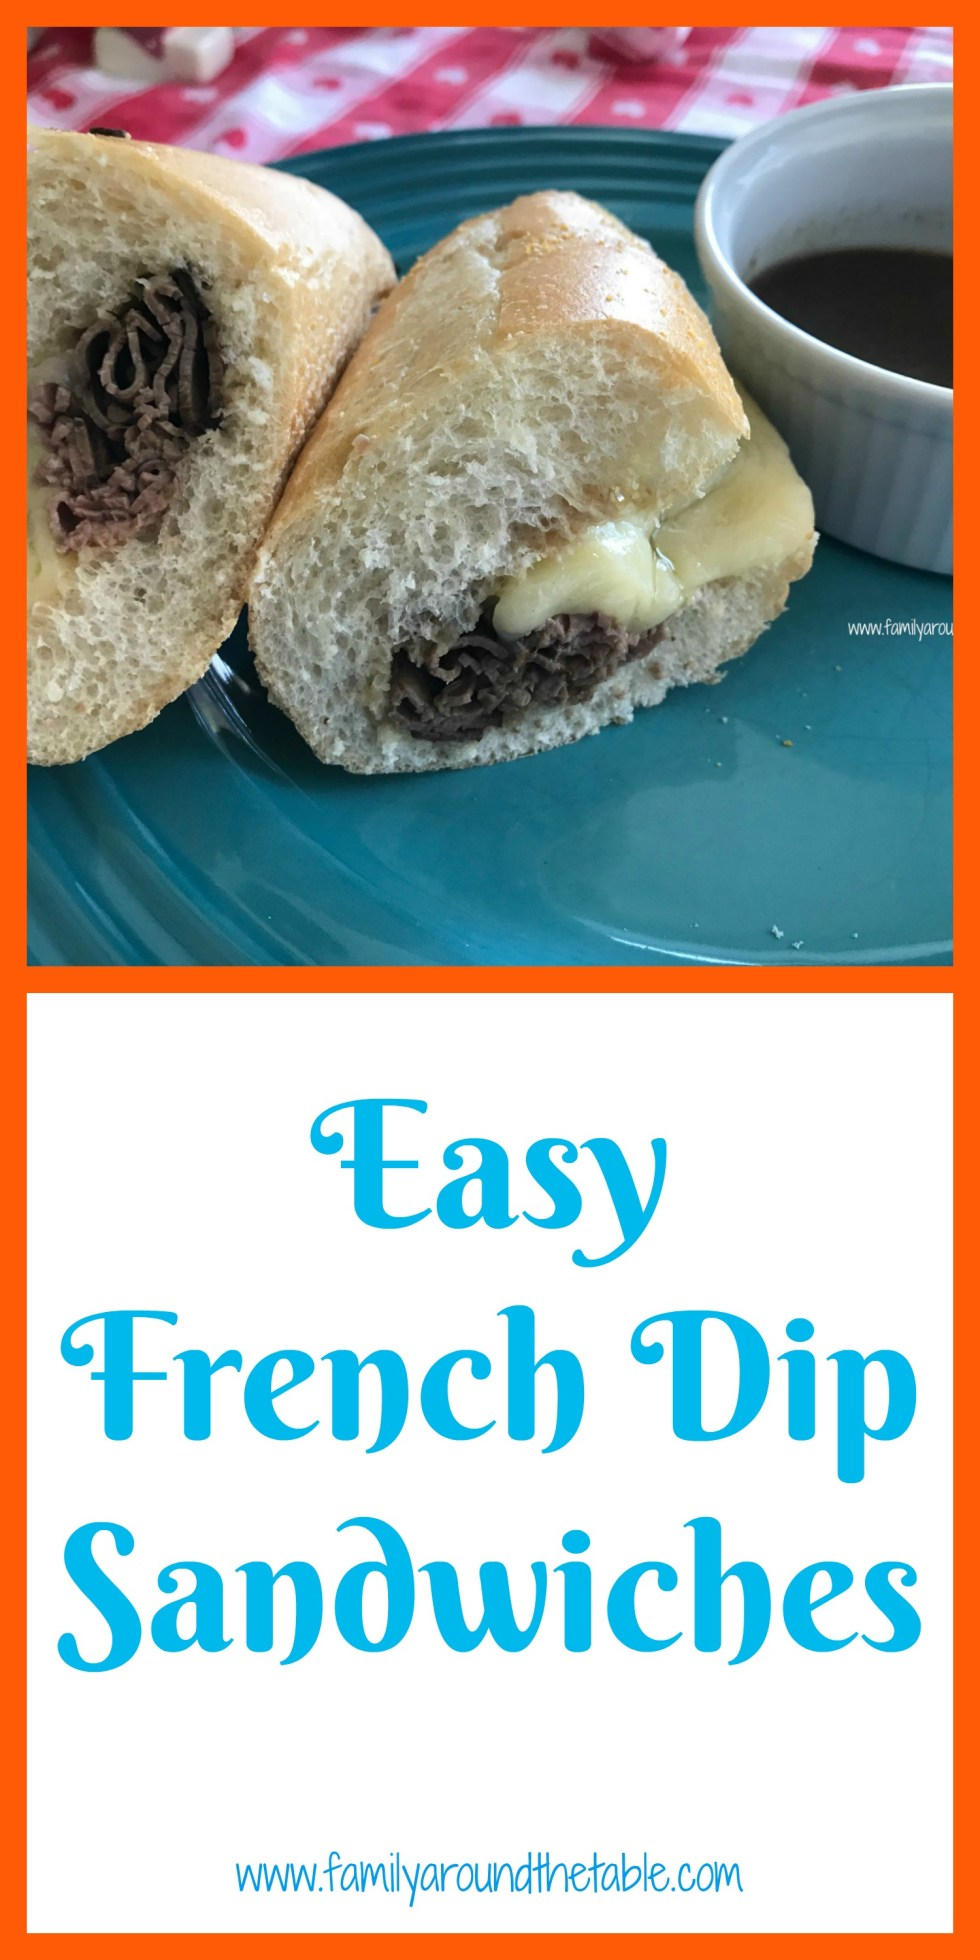 Easy French dip sandwiches are easier to make than you think.